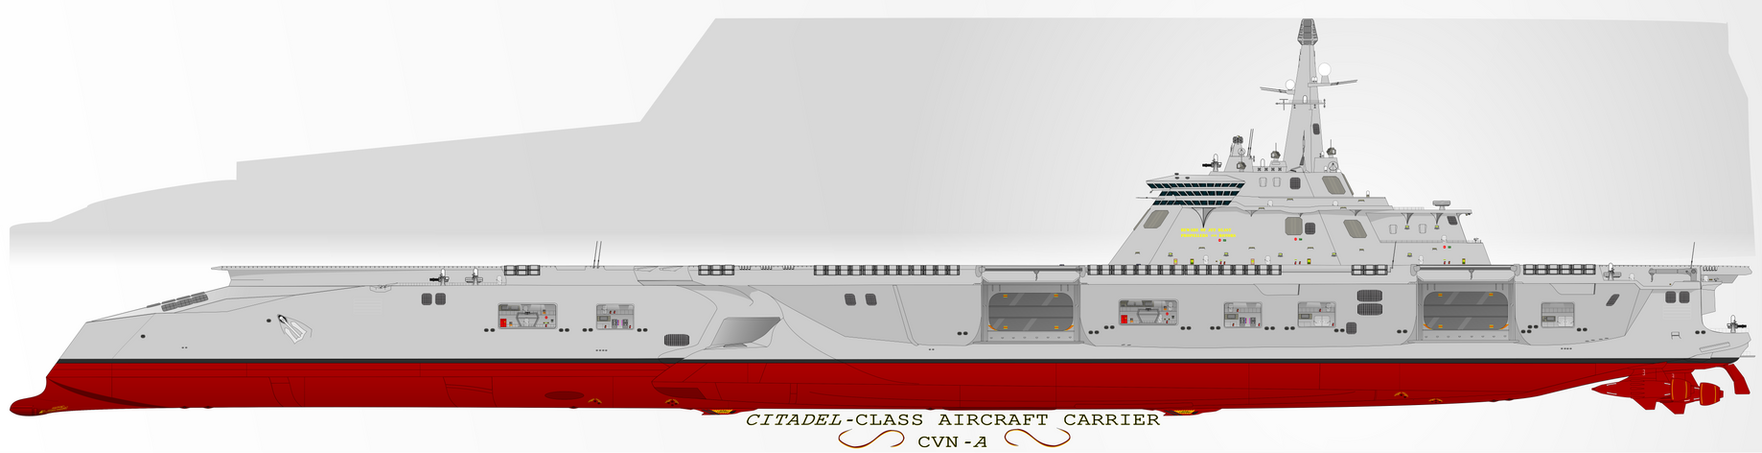 Citadel-class Aircraft Carrier by Afterskies